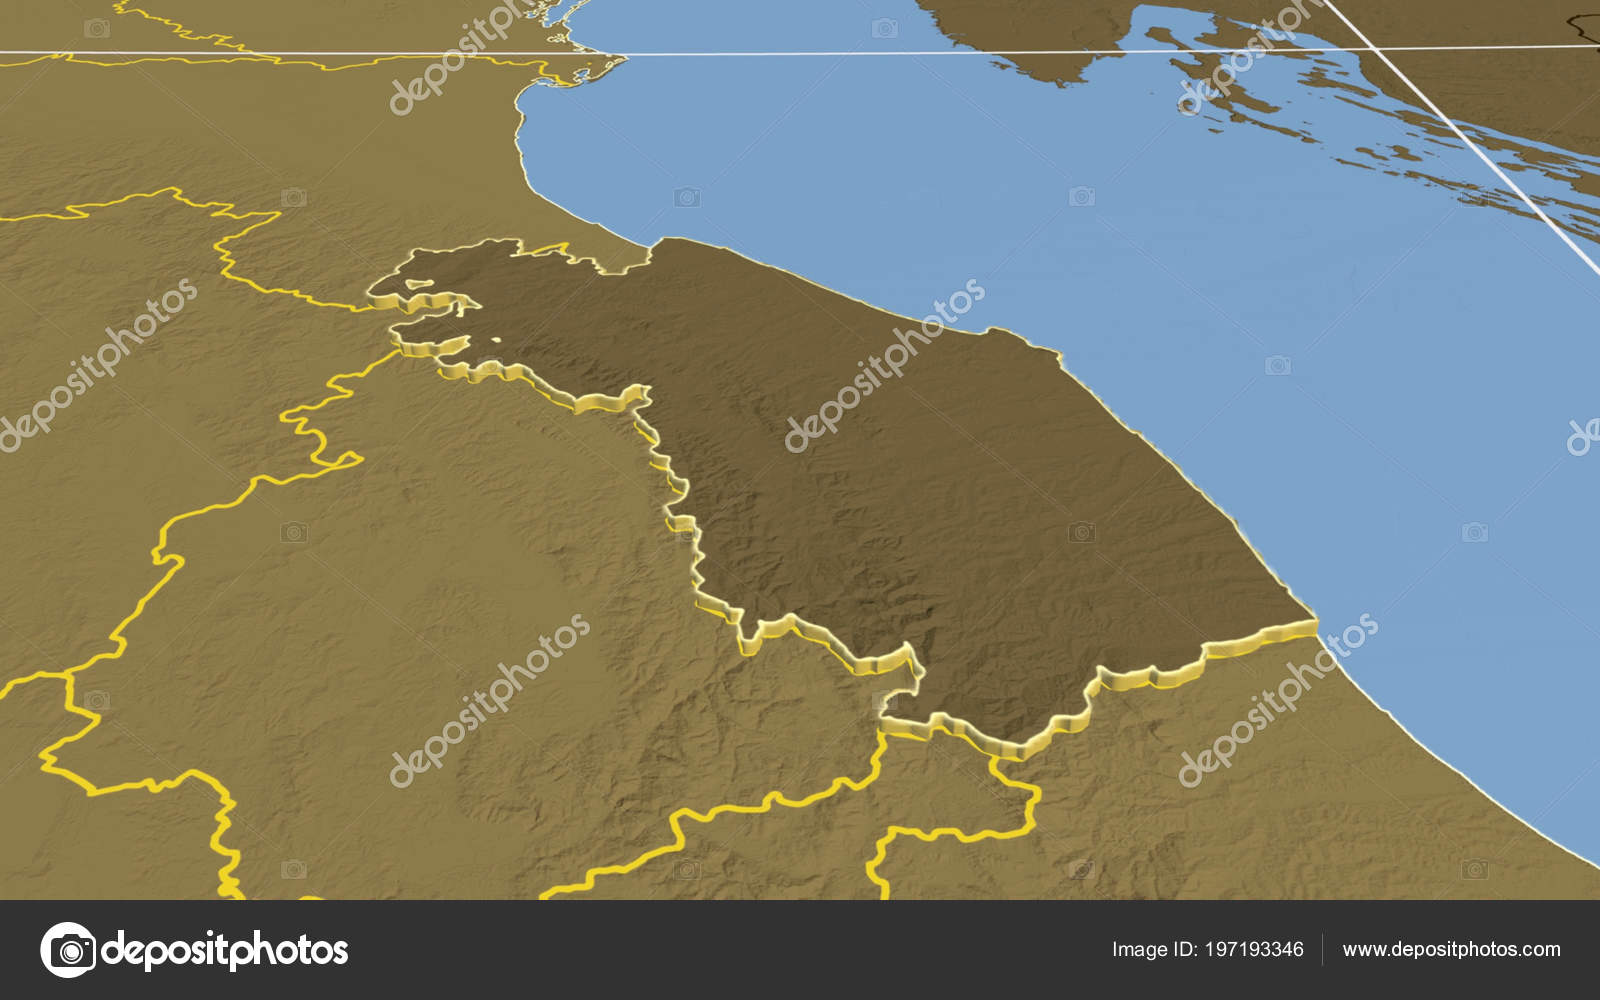 Marche Region Italy Map.Marche Region Italy Extruded Bilevel Elevation Map Stock Photo